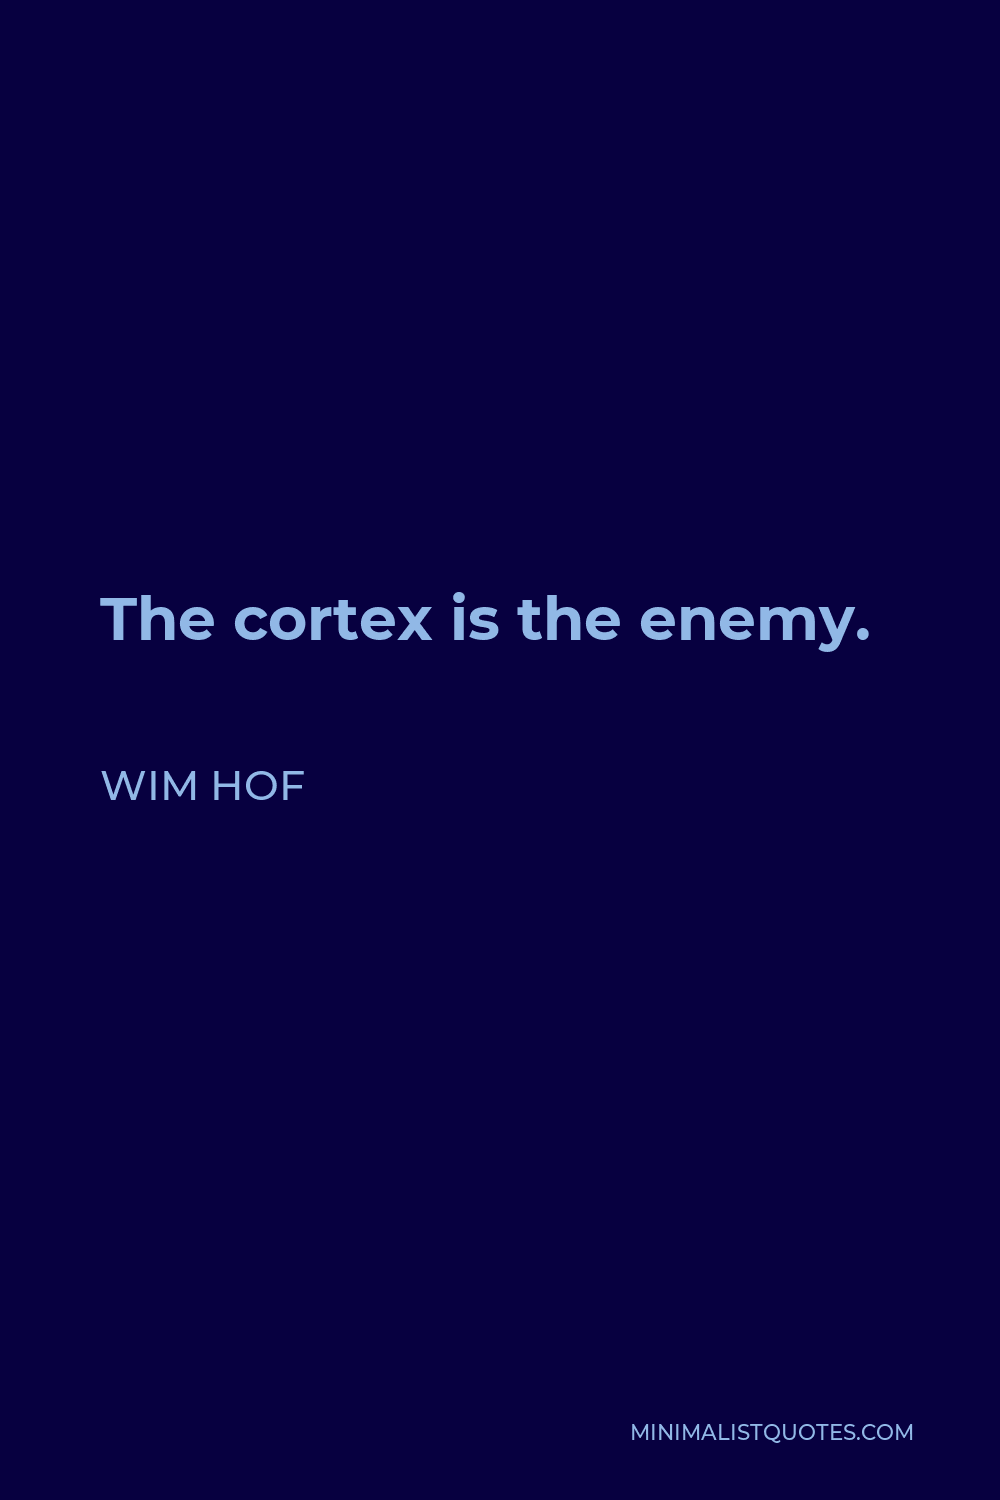 Wim Hof Quote - The cortex is the enemy.